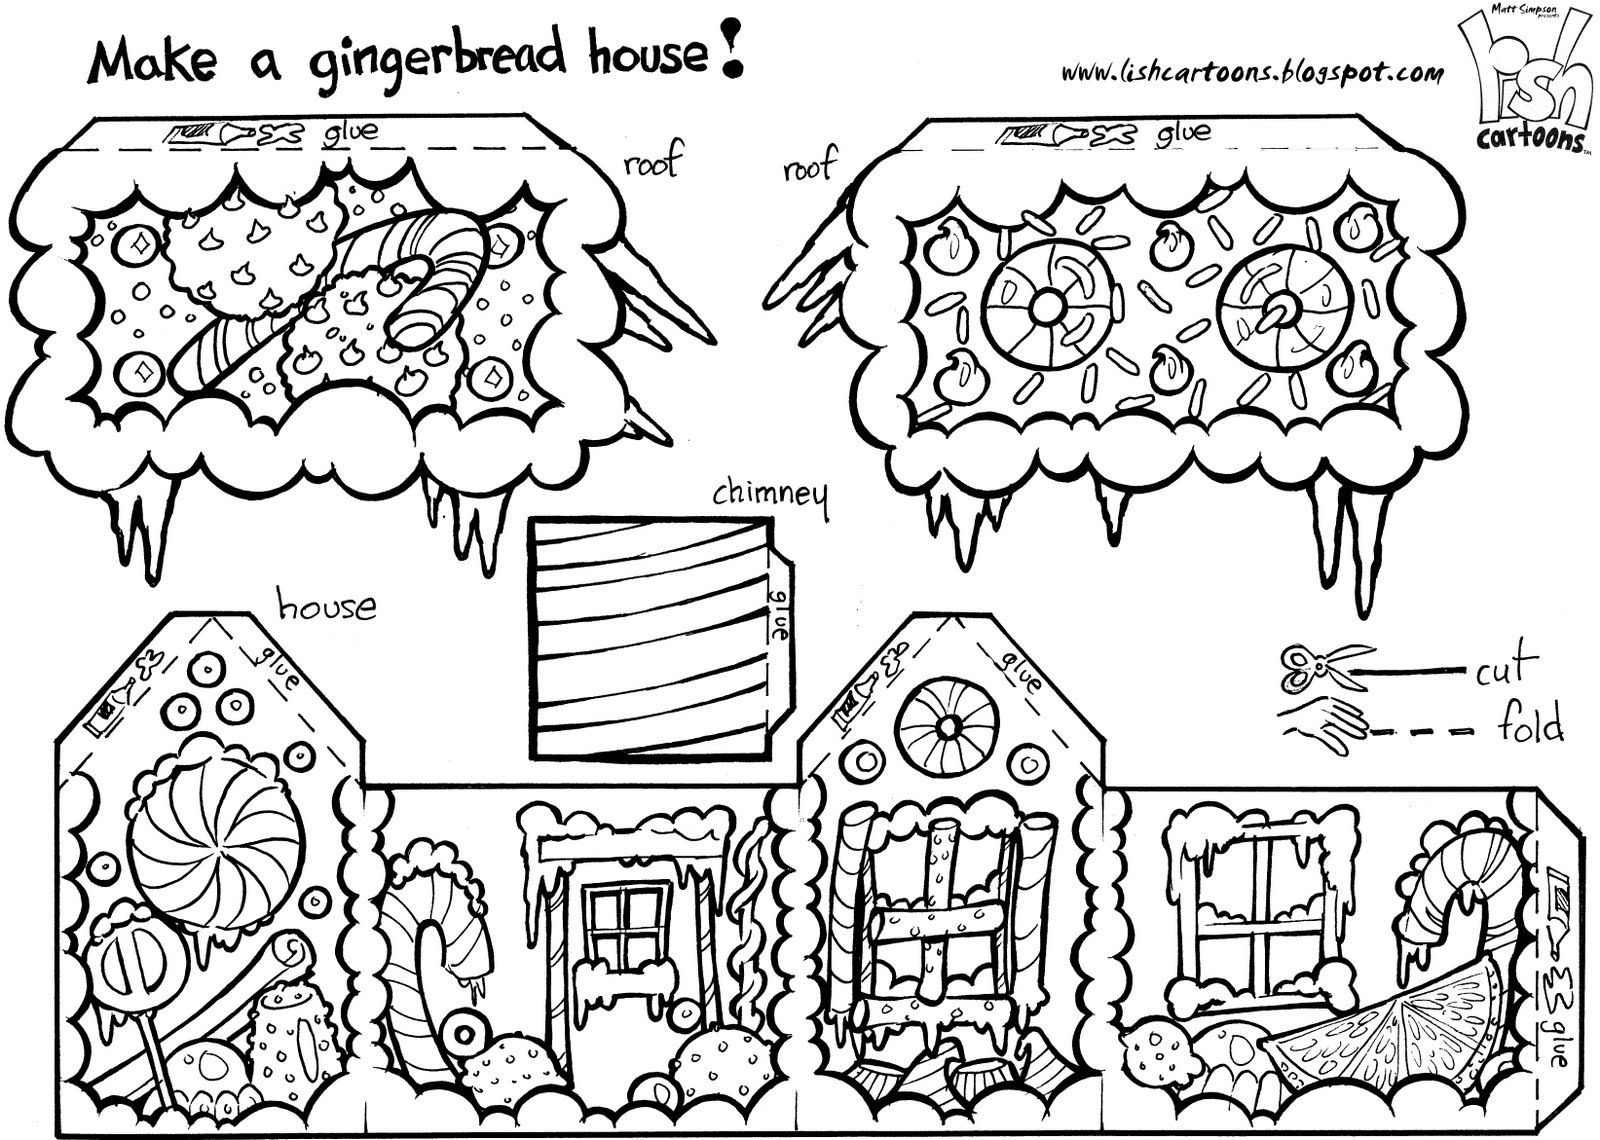 Gingerbread House to Color, Cut Out & Assemble | doodling-journaling ...